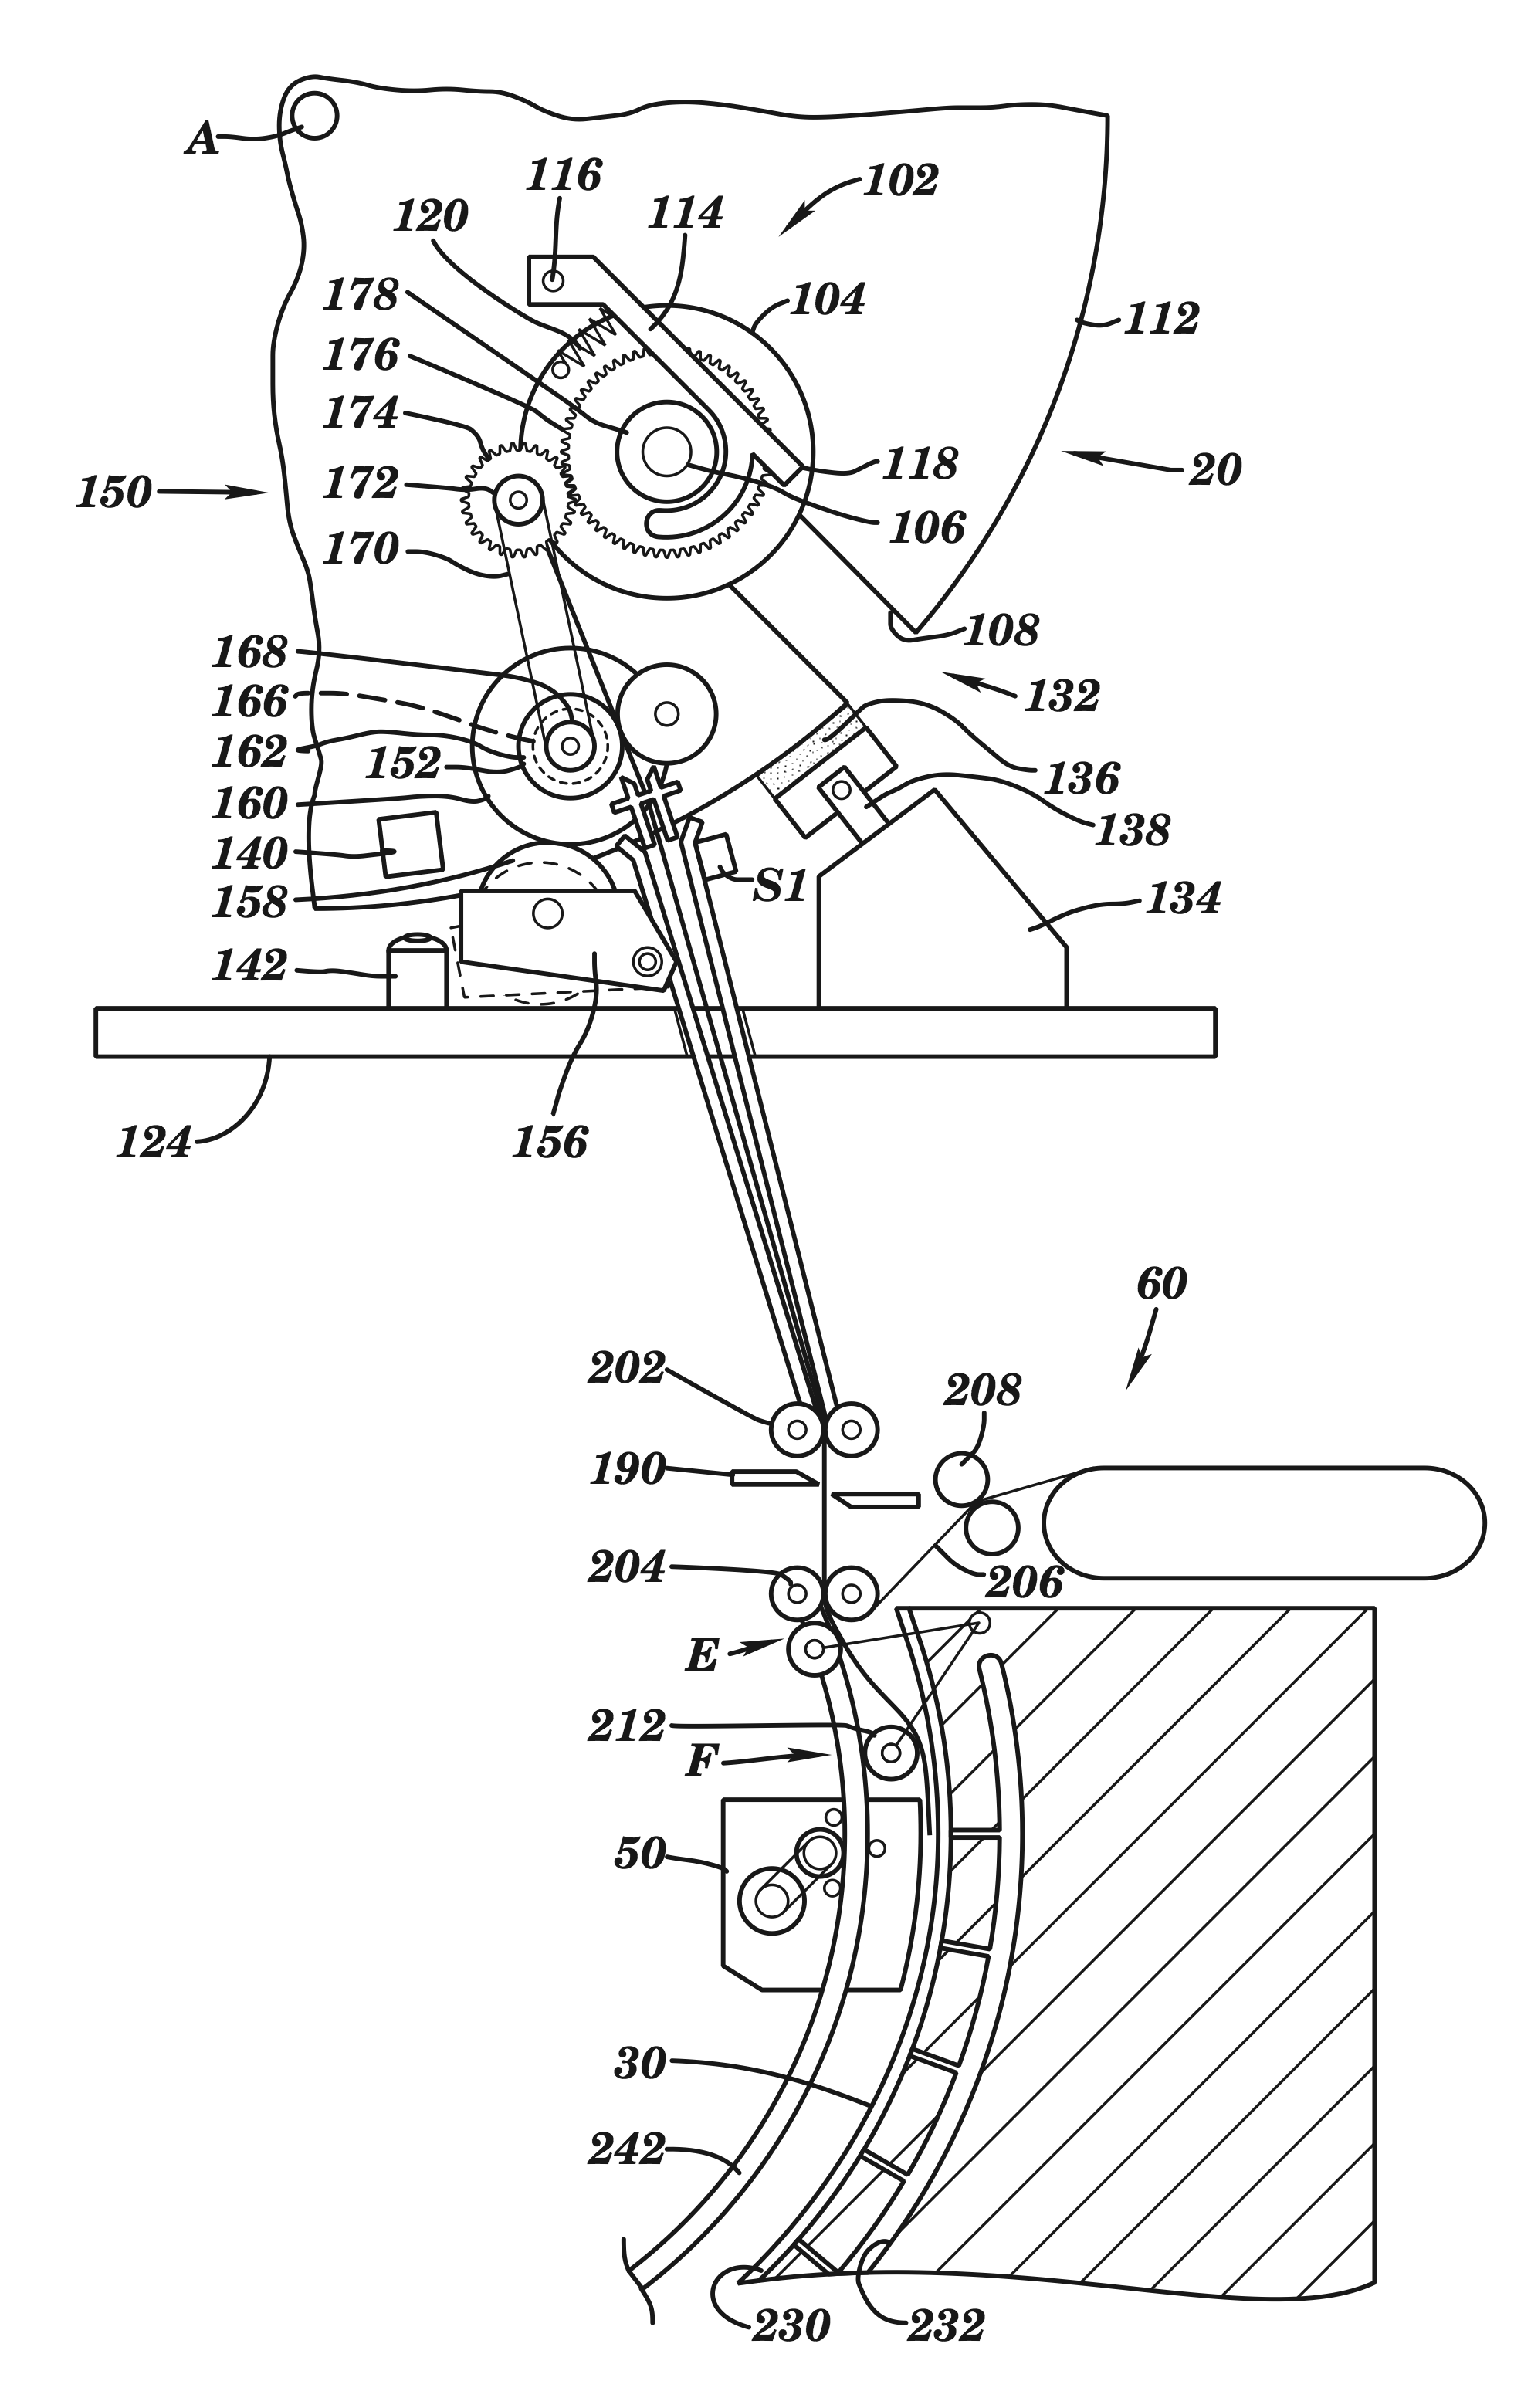 29_ptiserviceco_patent_drawing_mechanical.png